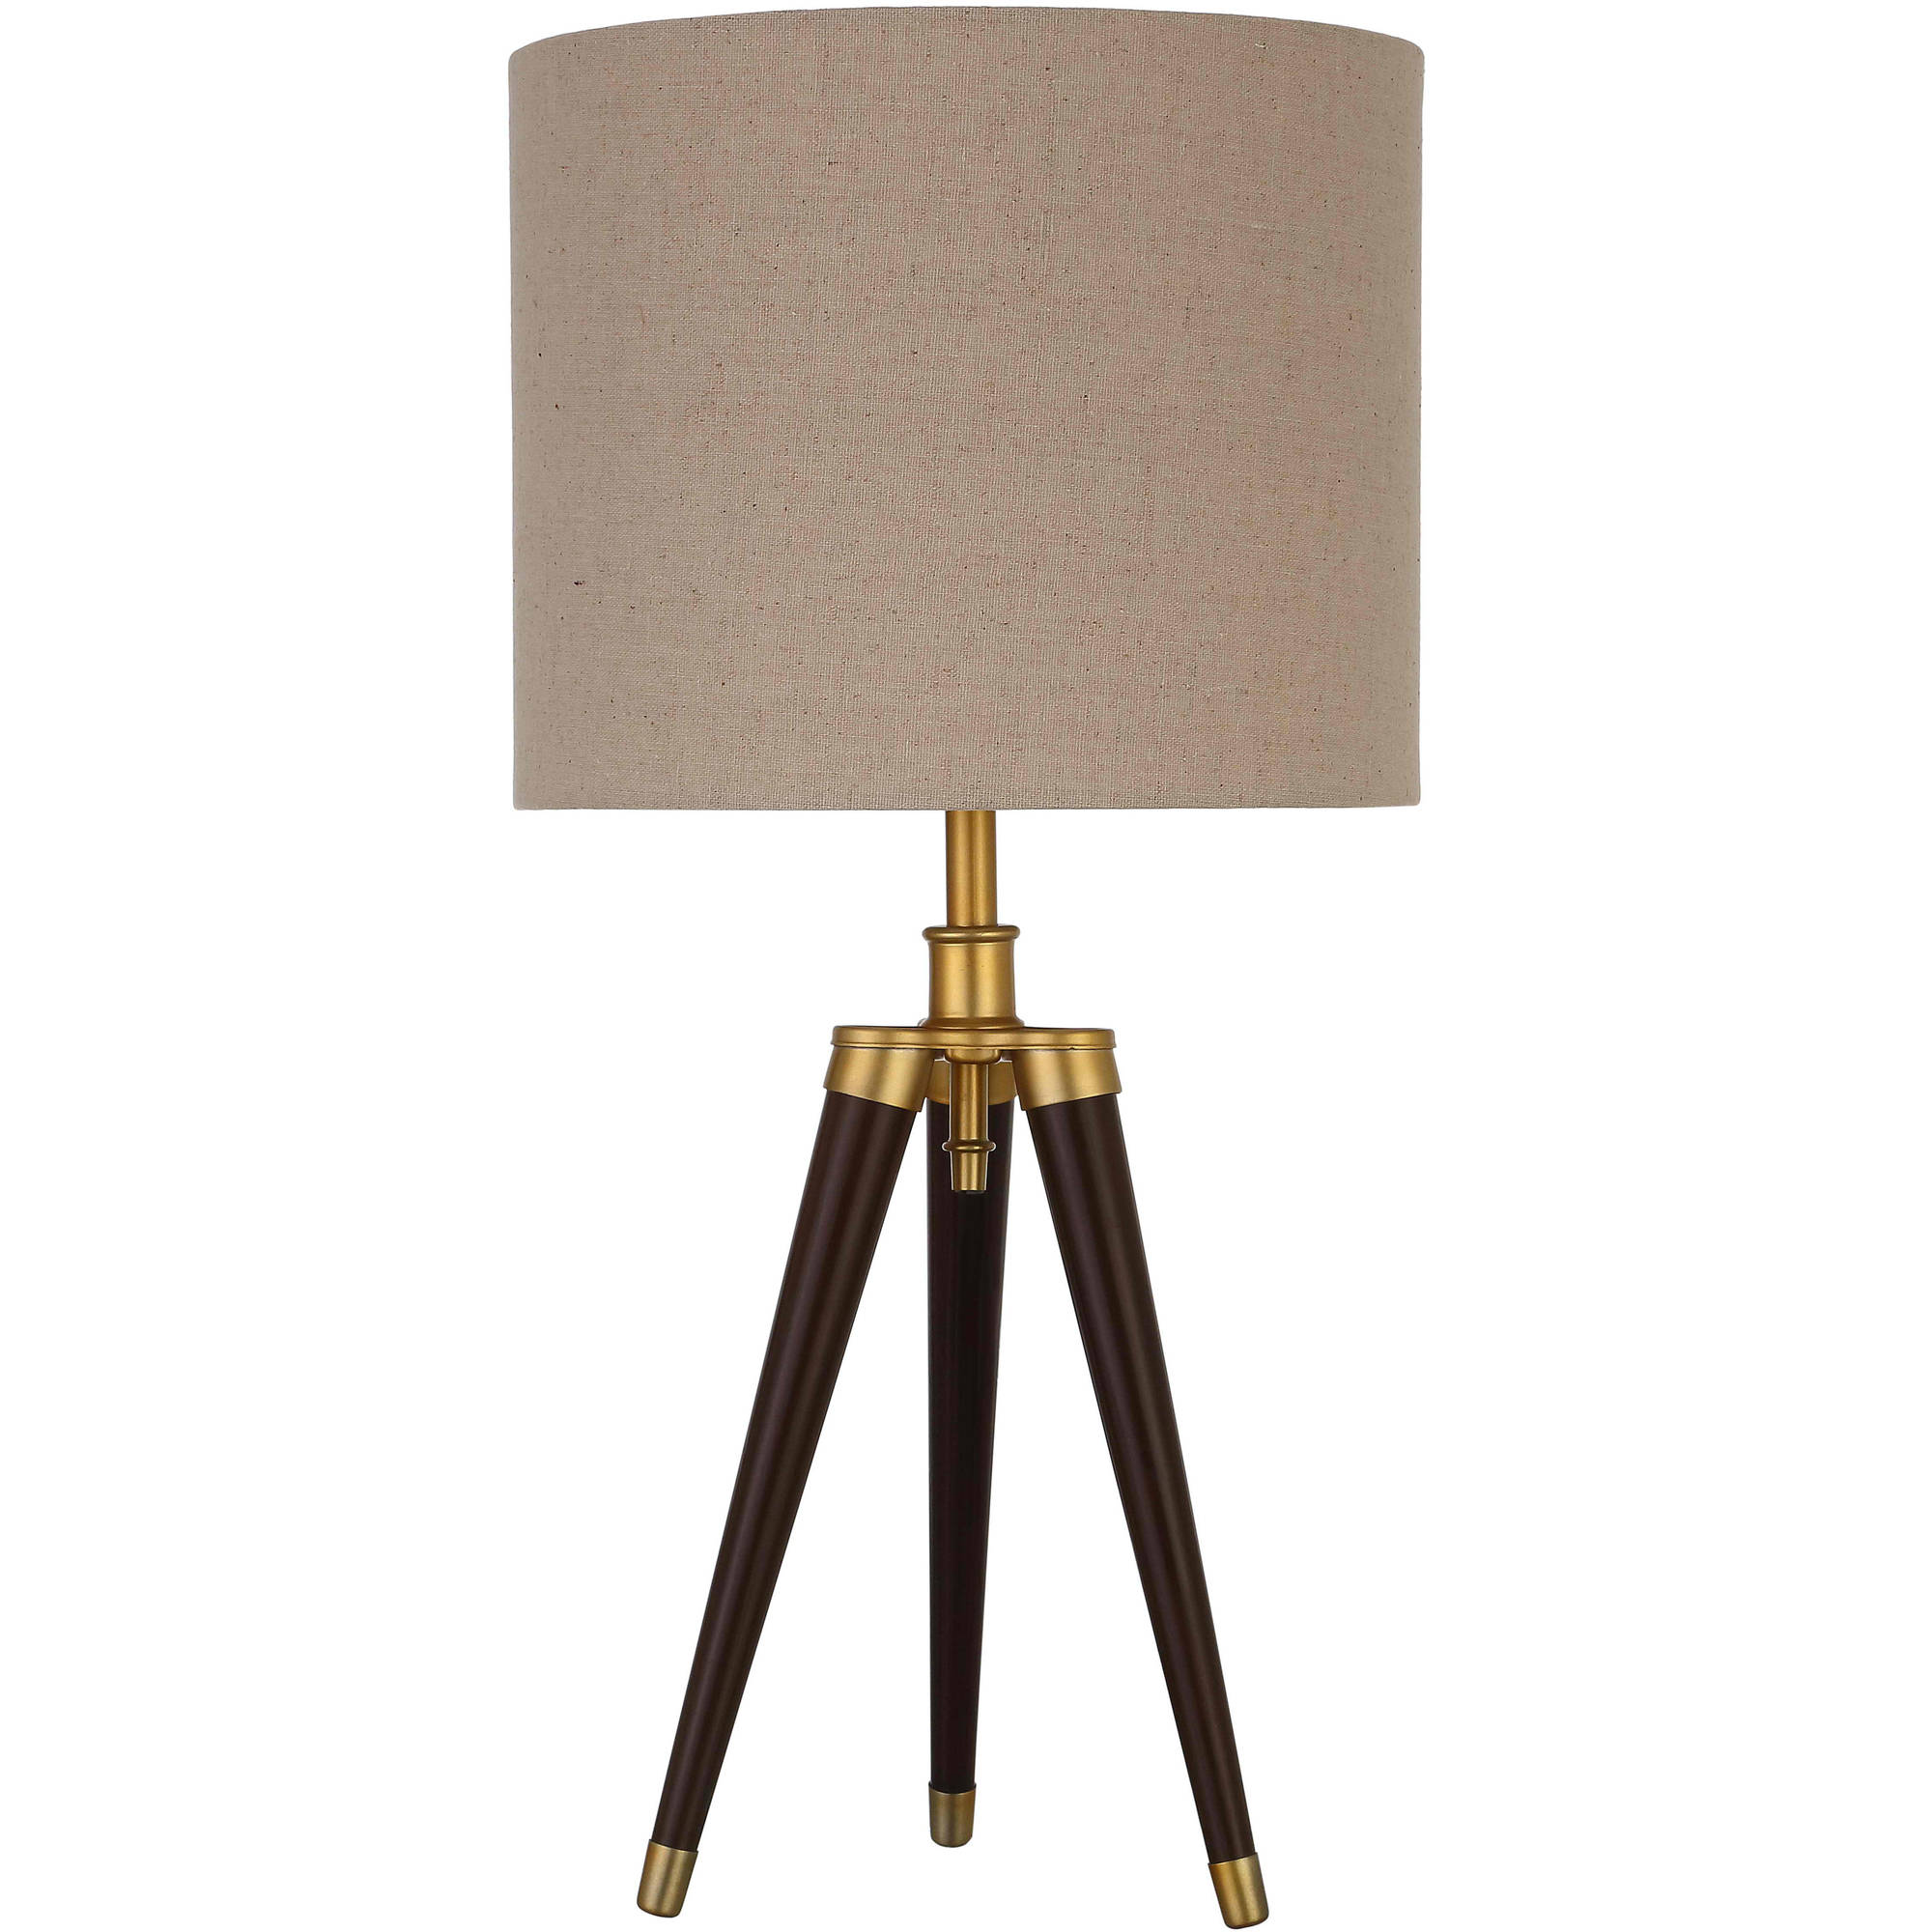 Elegant Better Homes And Gardens Tripod Lamp Tripod Table Lamp, Easy On/Off Switch,